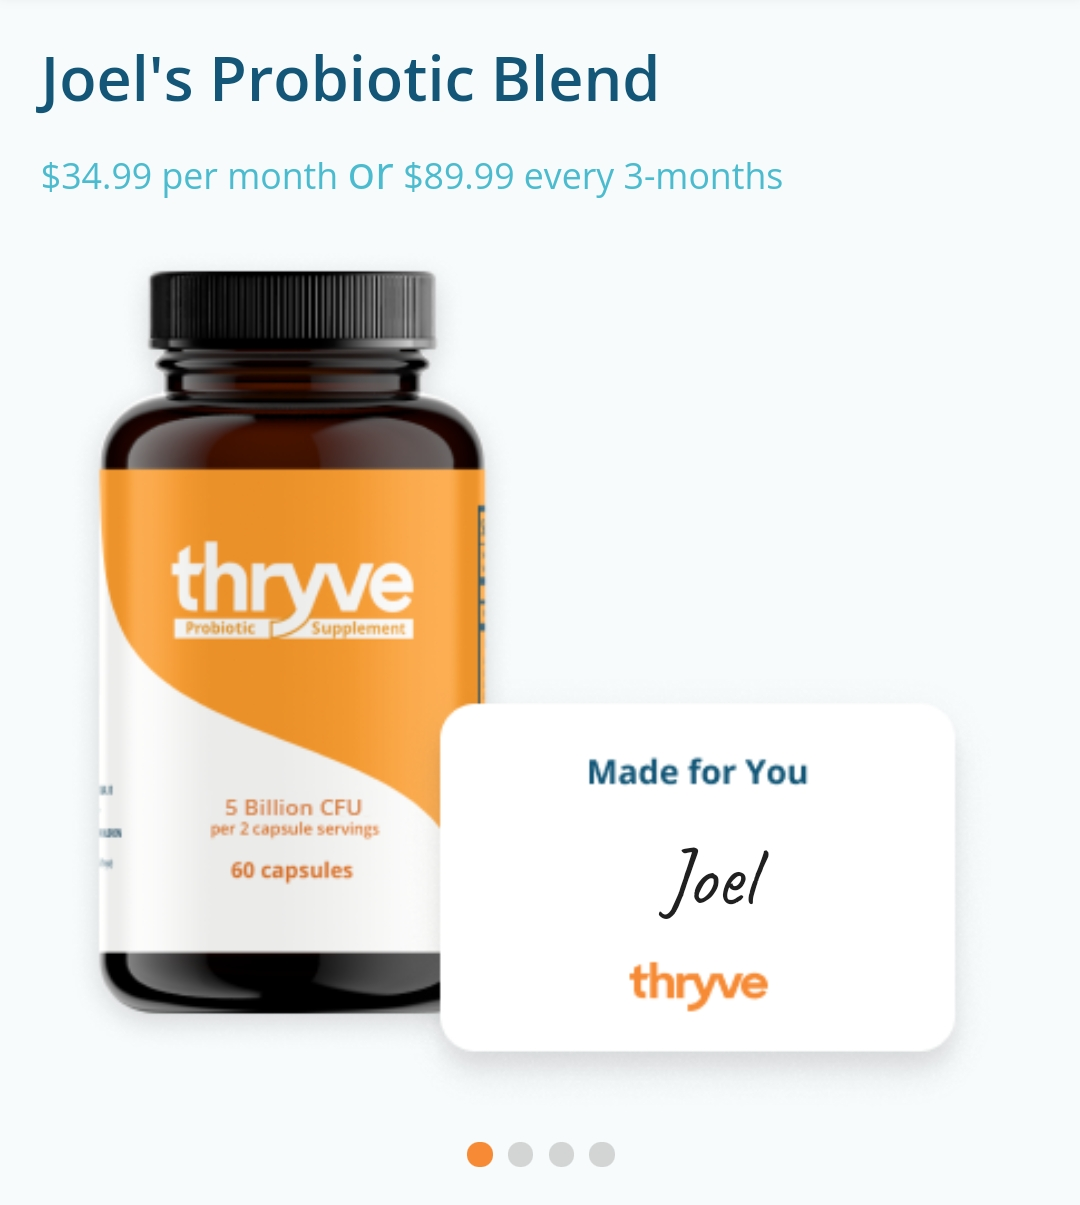 Thryve Review — Can You Trust Thryve's Microbiome Test and Probiotic Blends? 35